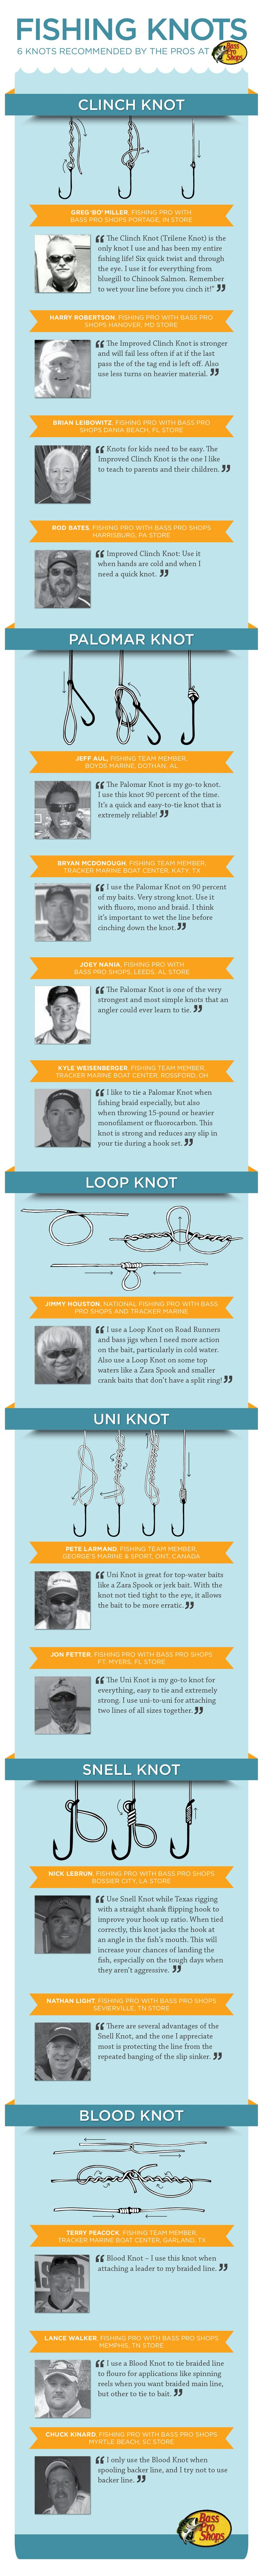 Best Fishing Knots - Bass Pro Shops